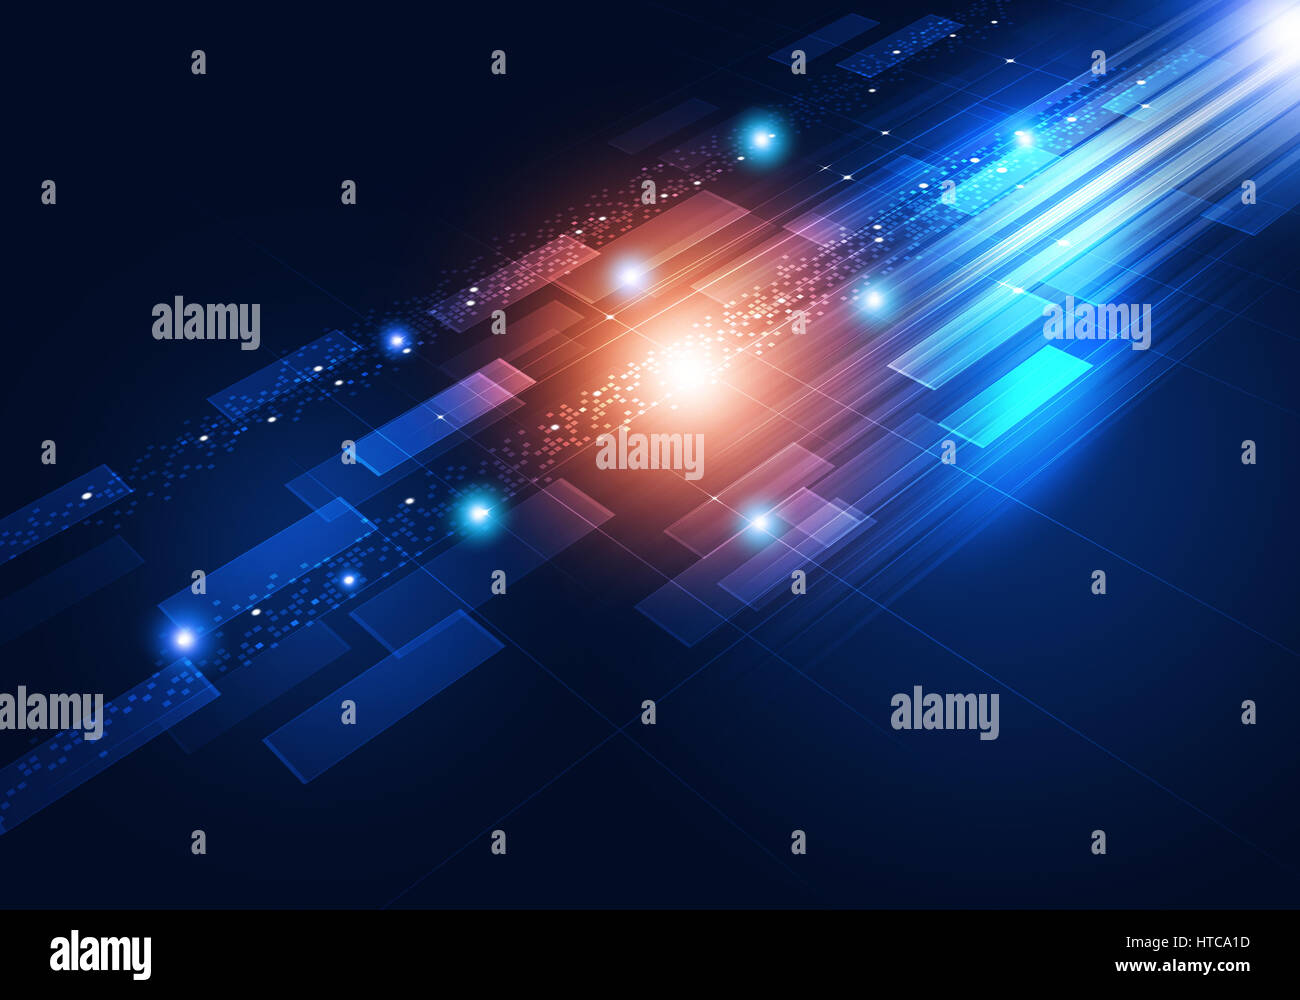 abstract motion technology blue concept connection background - Stock Image